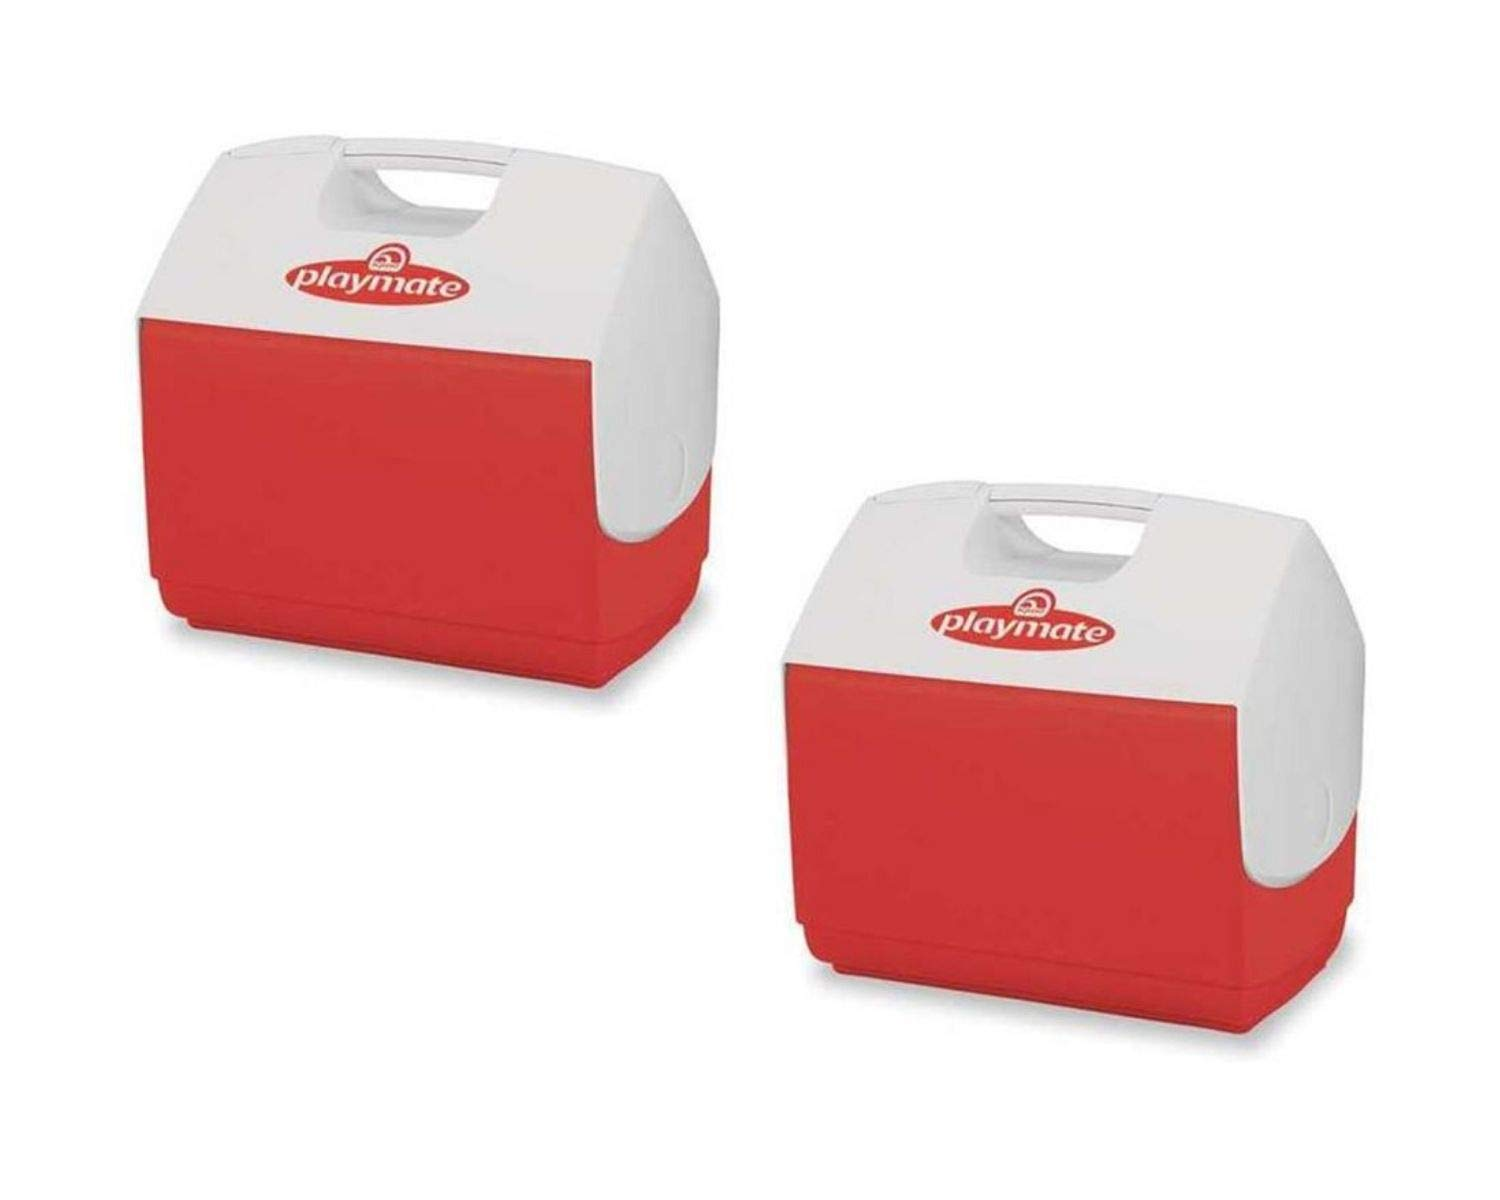 Igloo Playmate, Personal Sized Cooler (2 Set, 16 Quart, Red/White)